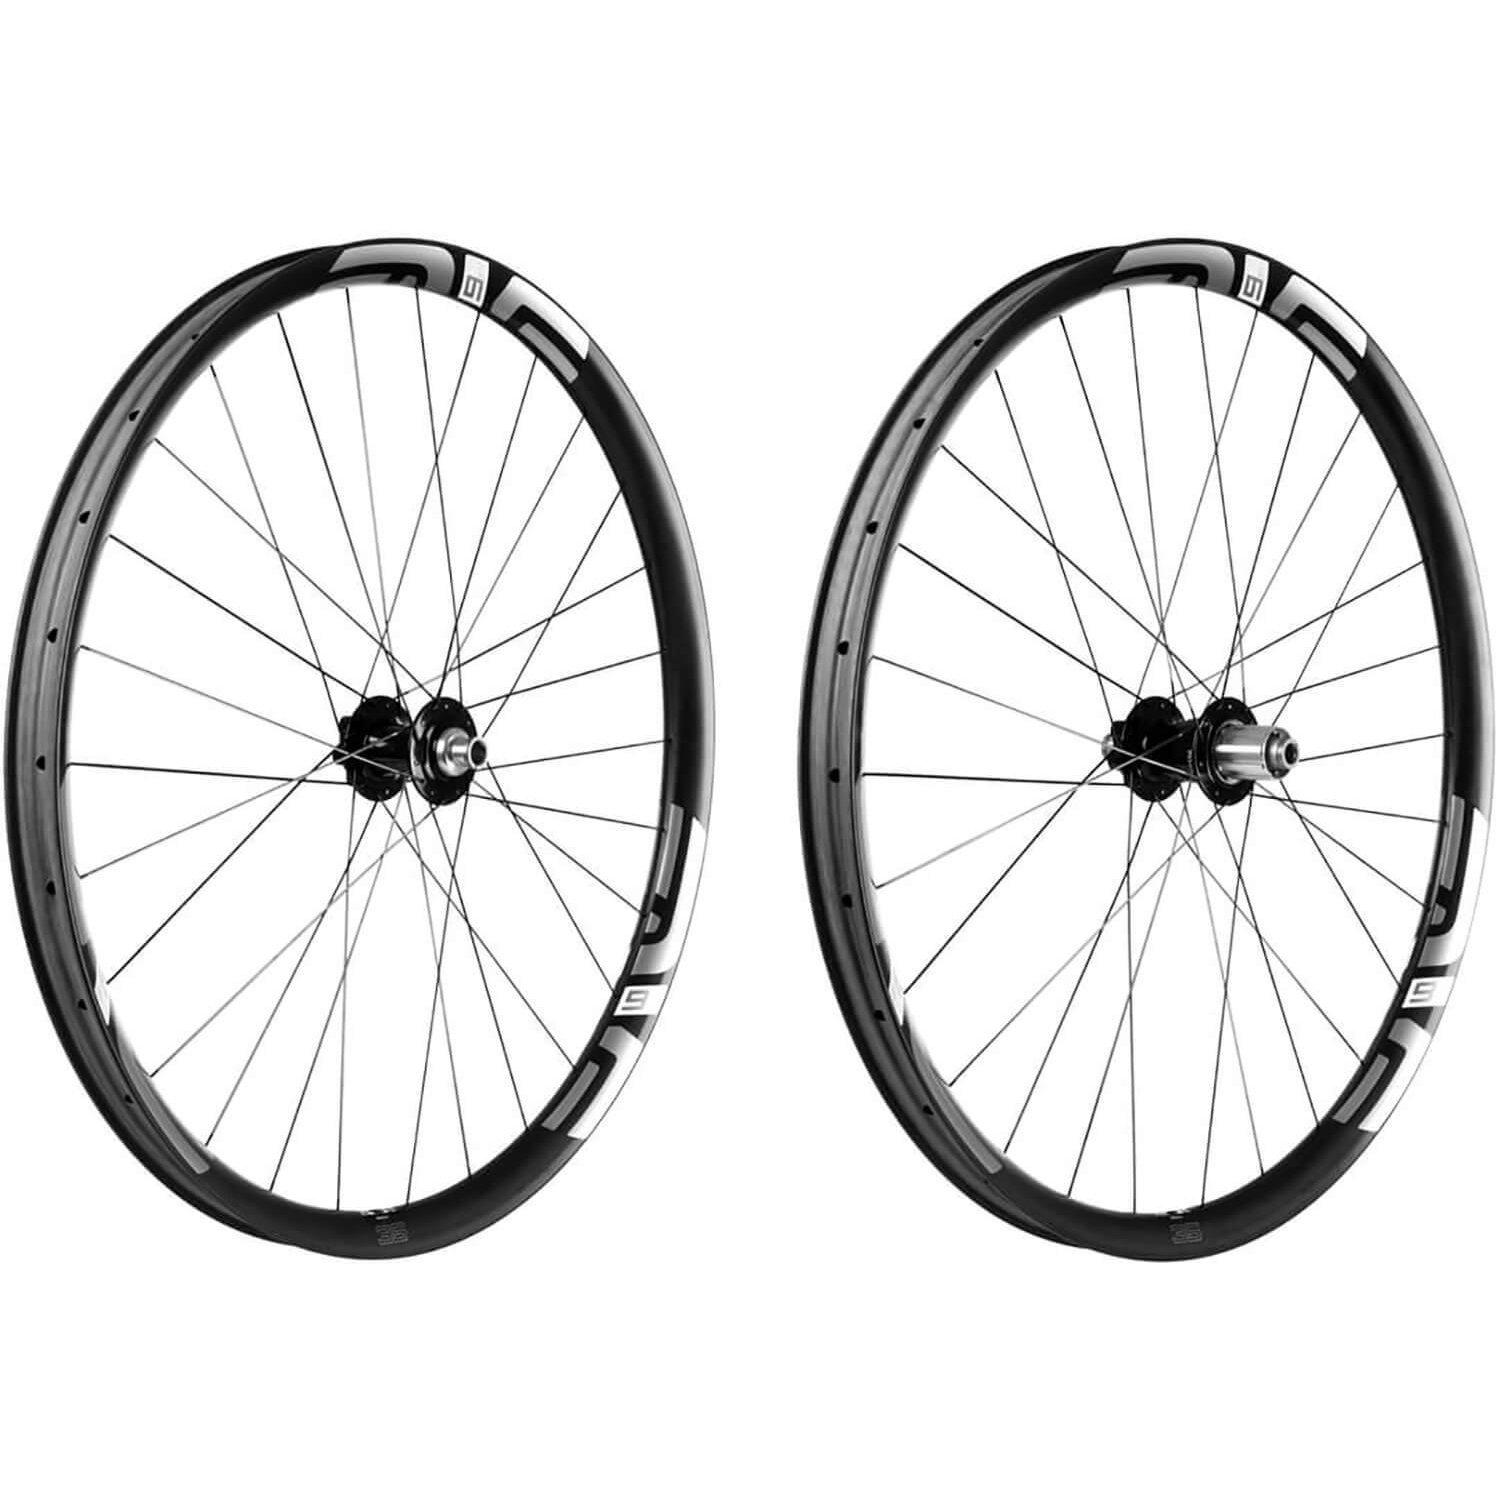 ENVE-ENVE M635 MTB Wheelset – Chris King Hubs-Black – Shimano-29-EN1327CK1002114009-saddleback-elite-performance-cycling